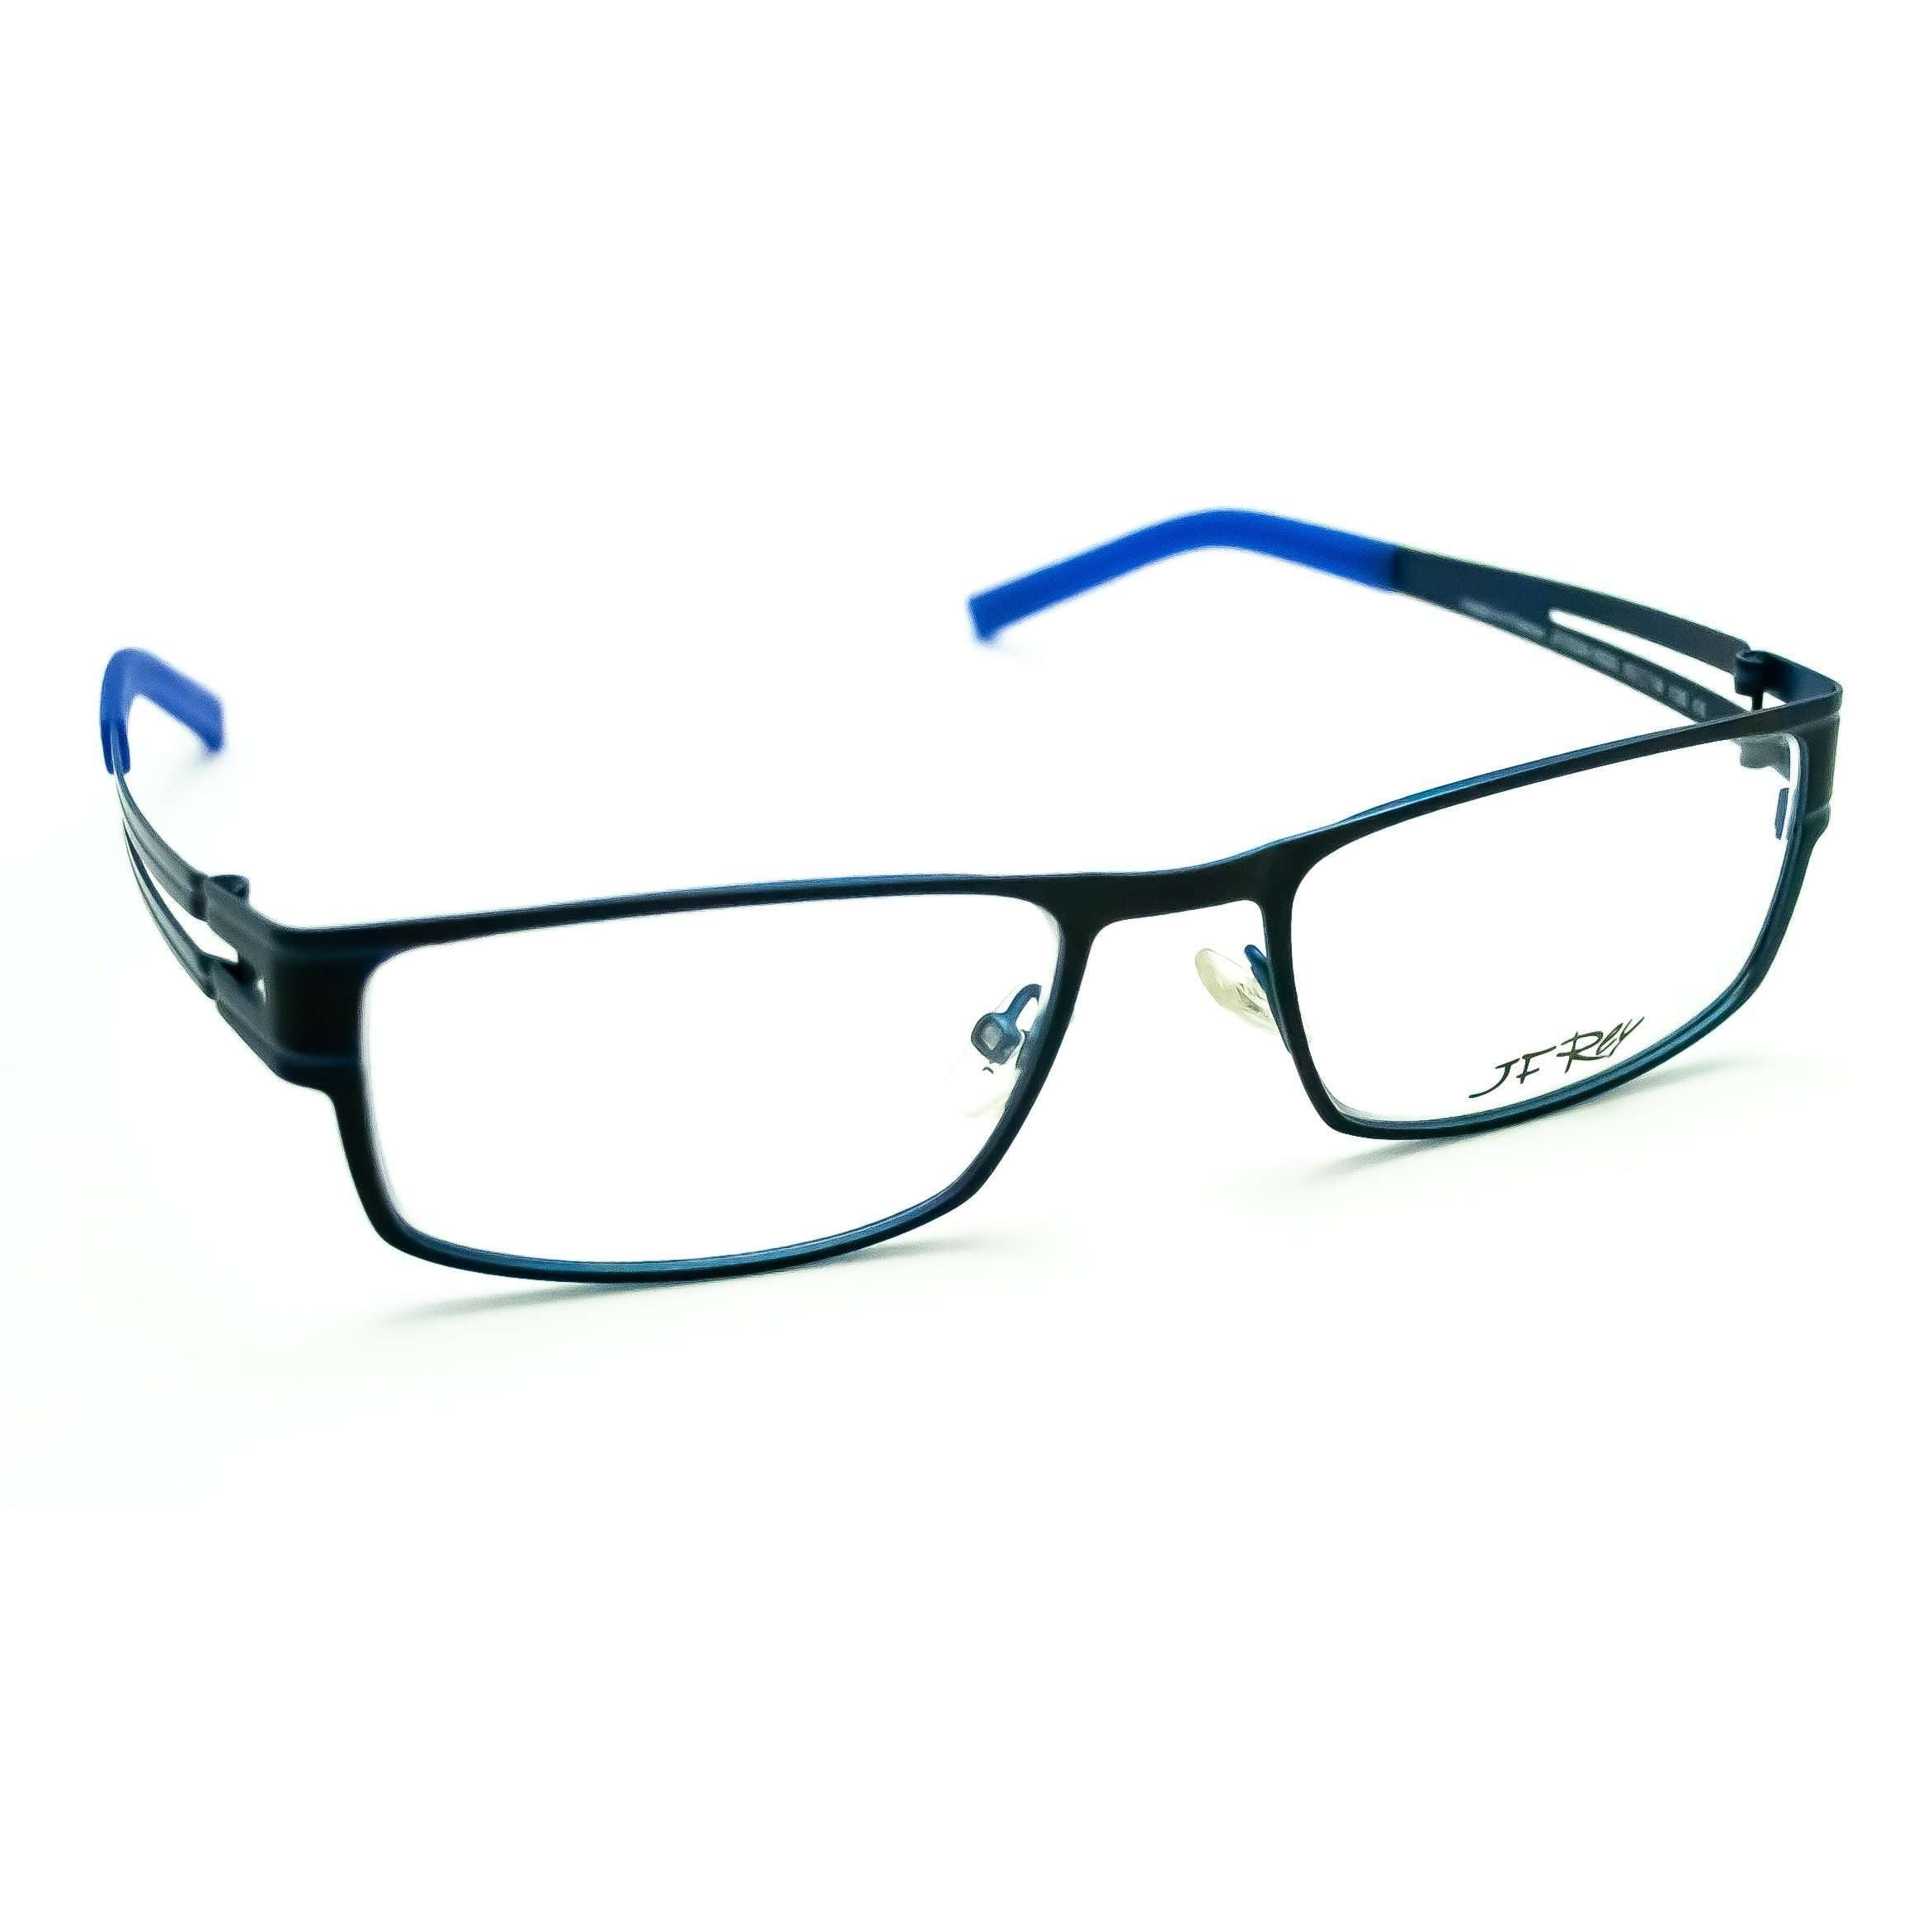 JF Rey Model 2536 Designer Glasses